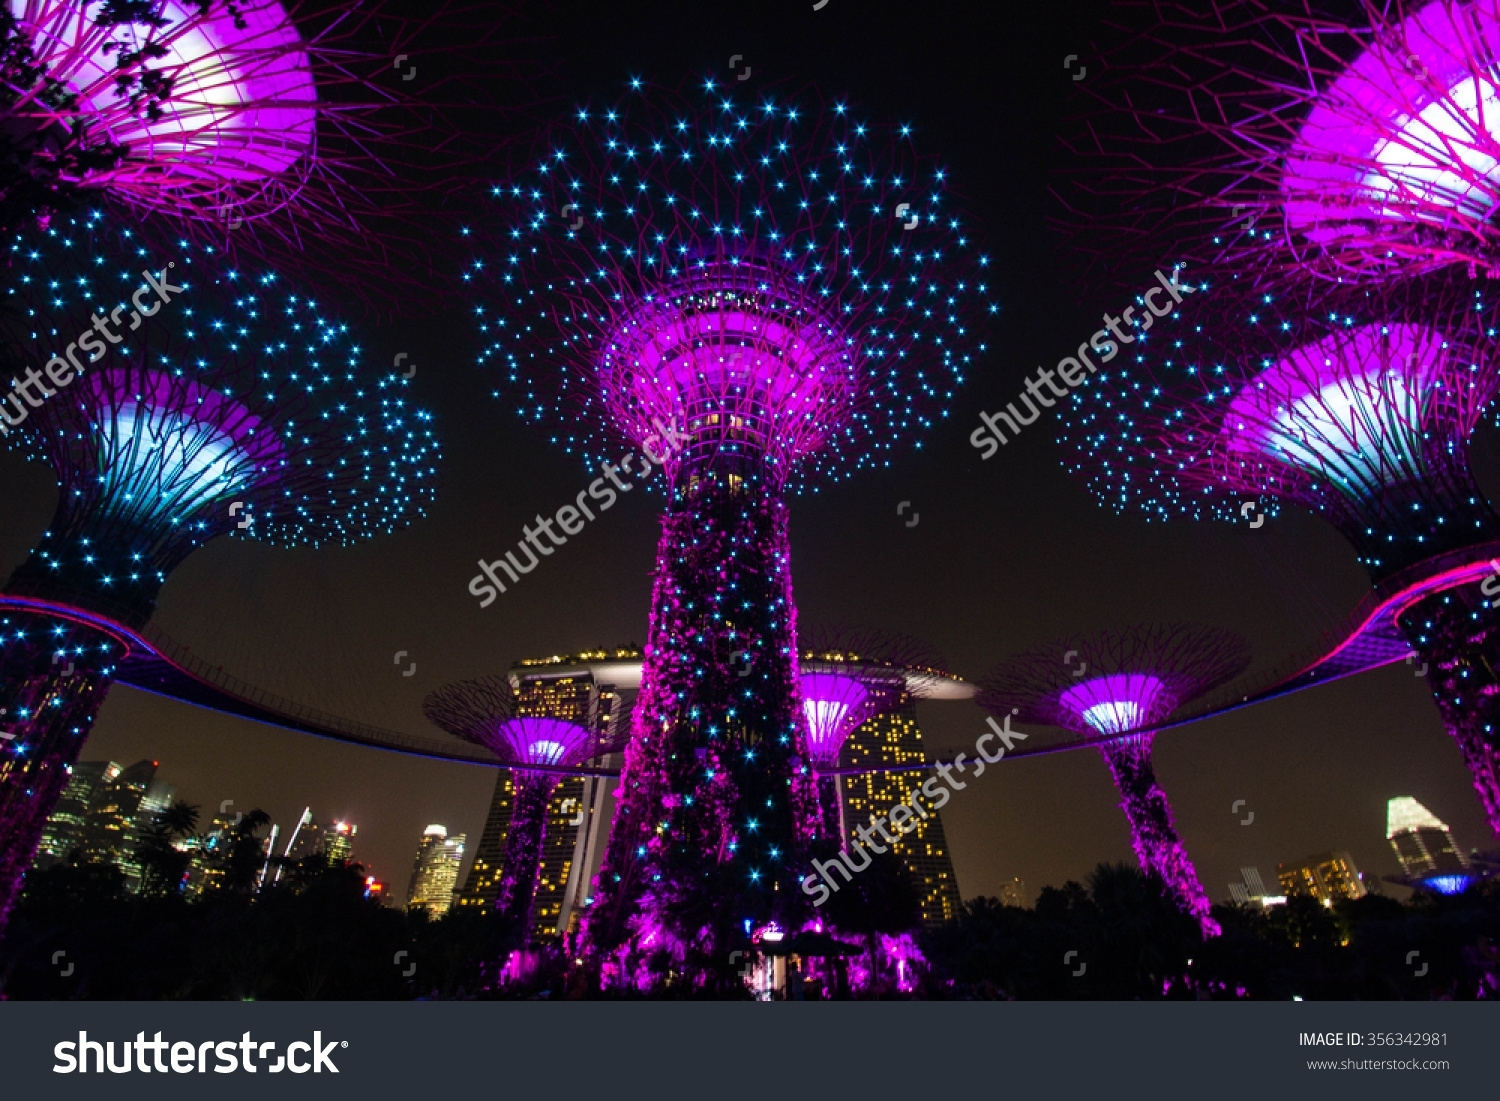 Royalty-Free Singapore-October 15:night View Of … #356342981 Stock throughout Garden Rhapsody Light And Sound Show